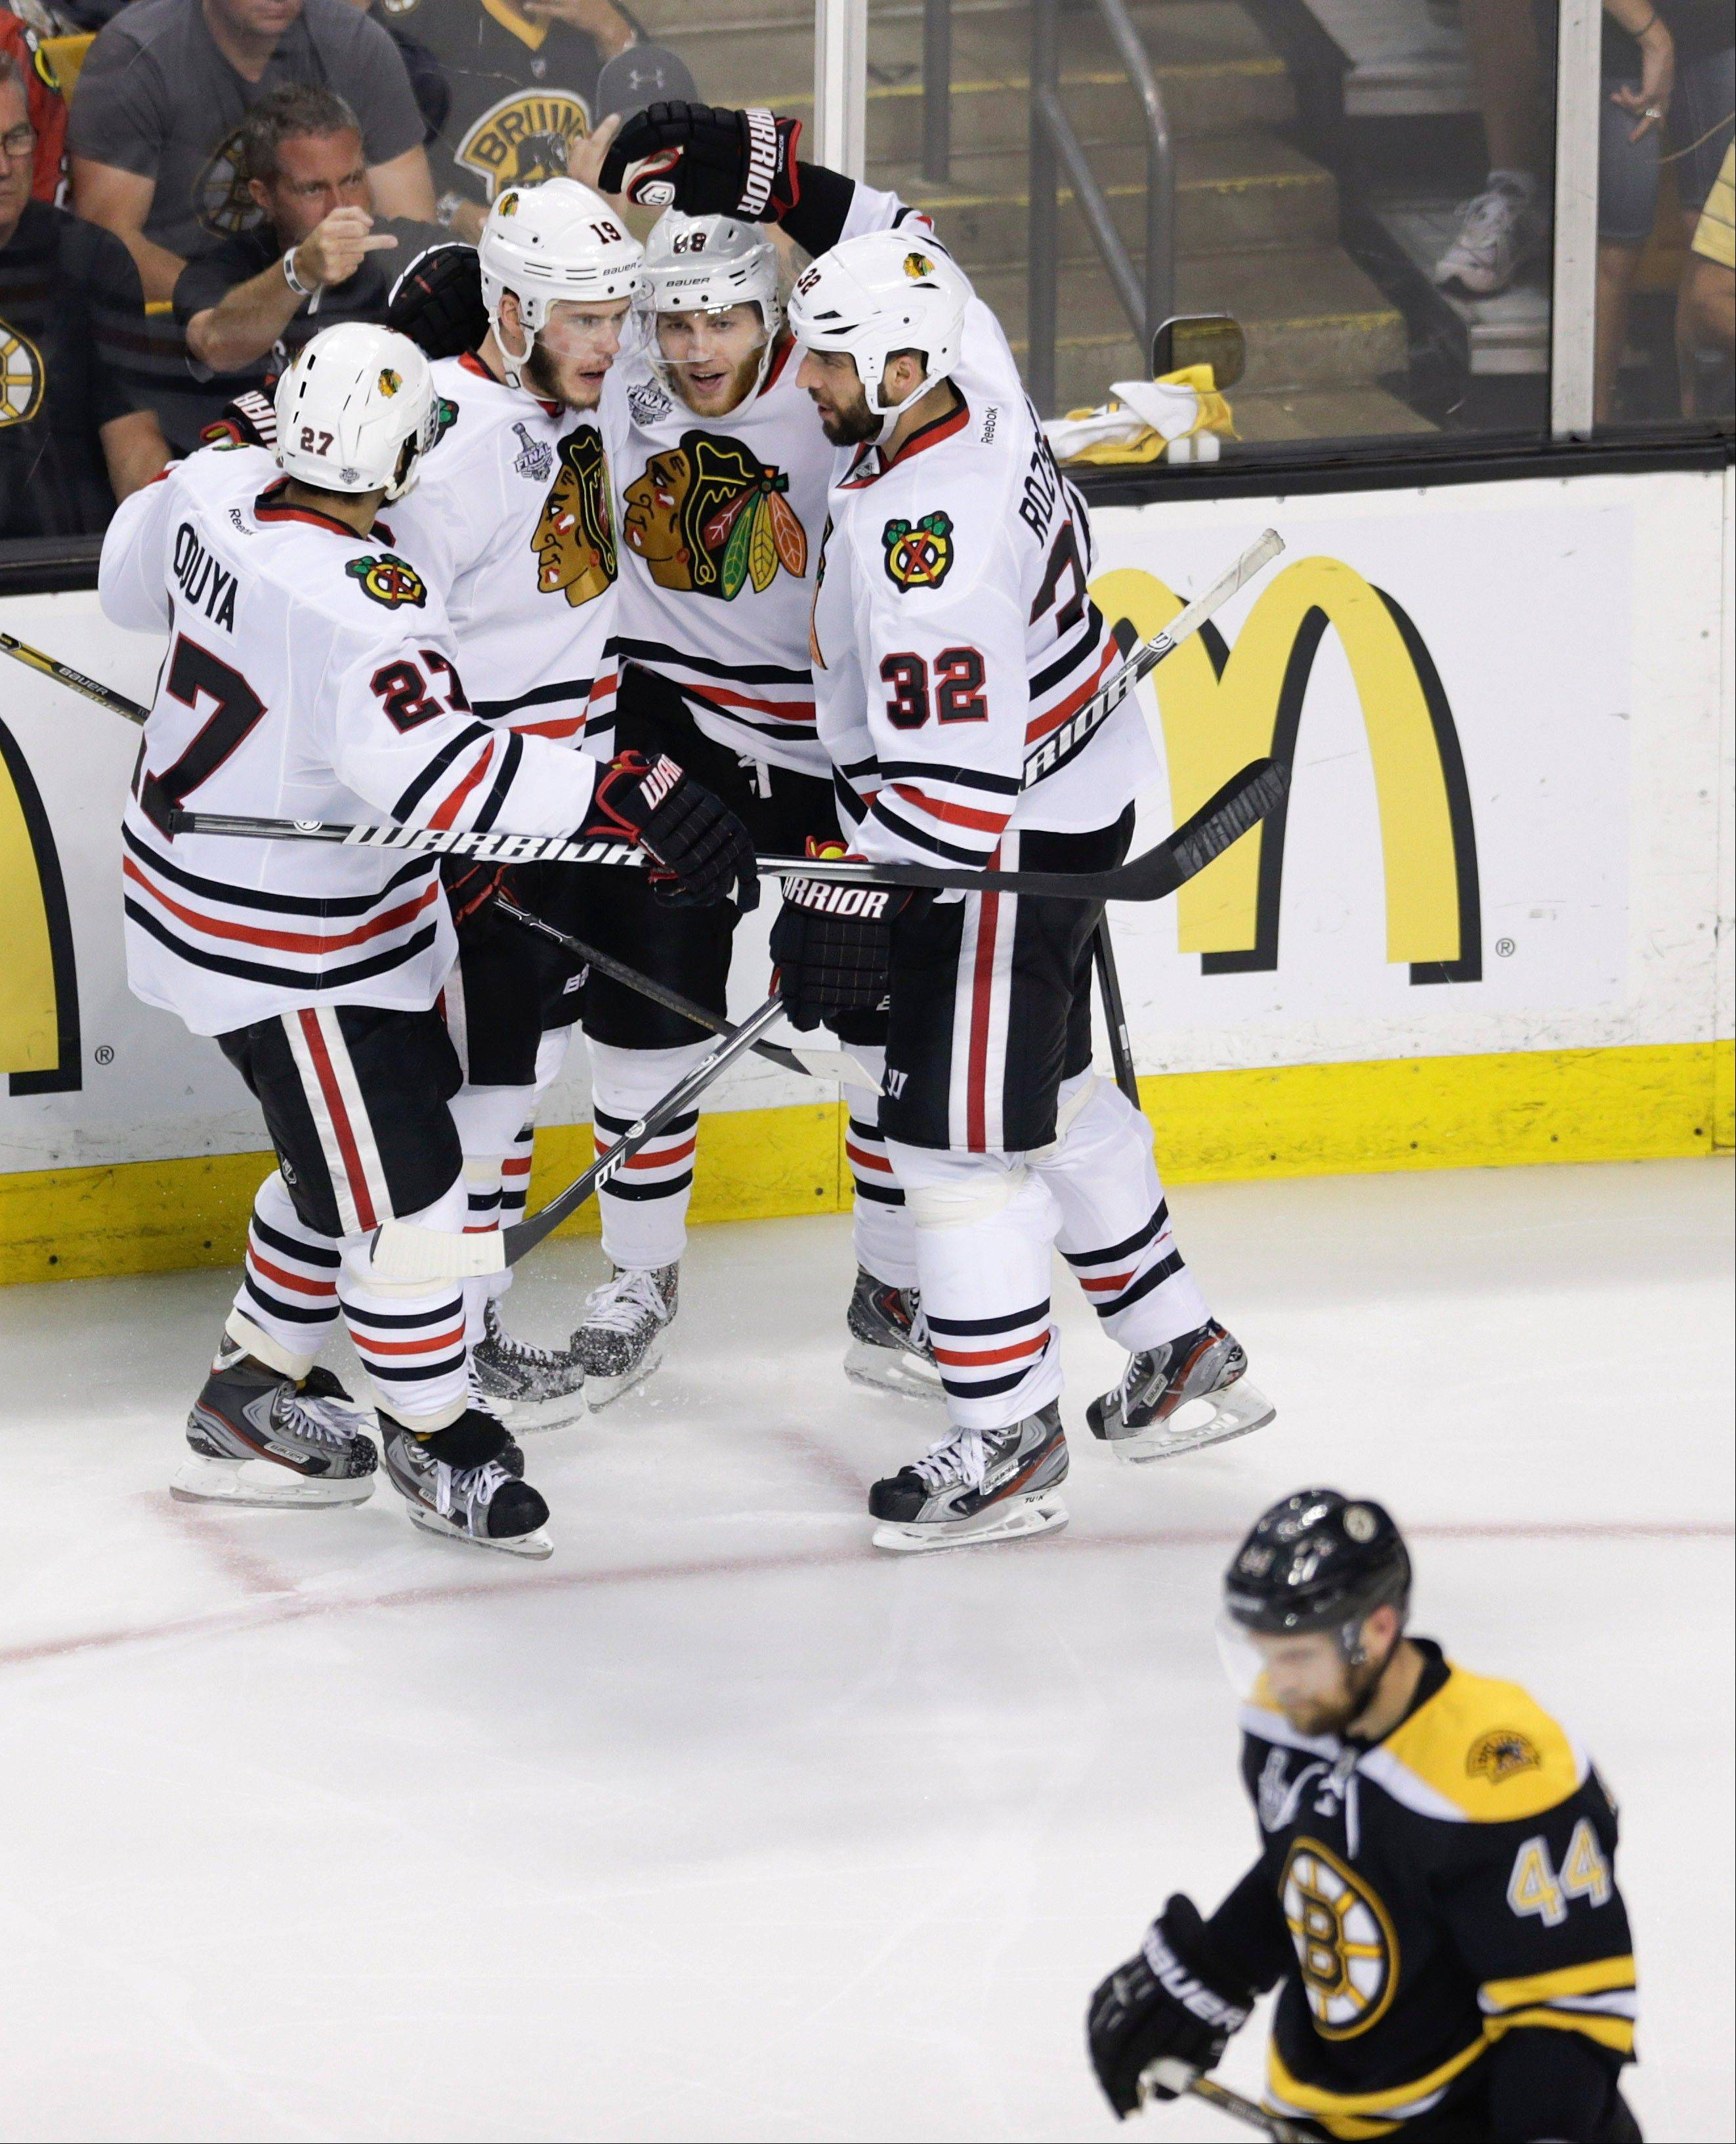 Chicago Blackhawks center Jonathan Toews, left, celebrates his goal against the Boston Bruins with right wing Patrick Kane, center, and defenseman Michal Rozsival (32), of the Czech Republic, during the second period in Game 6 of the Stanley Cup Finals.